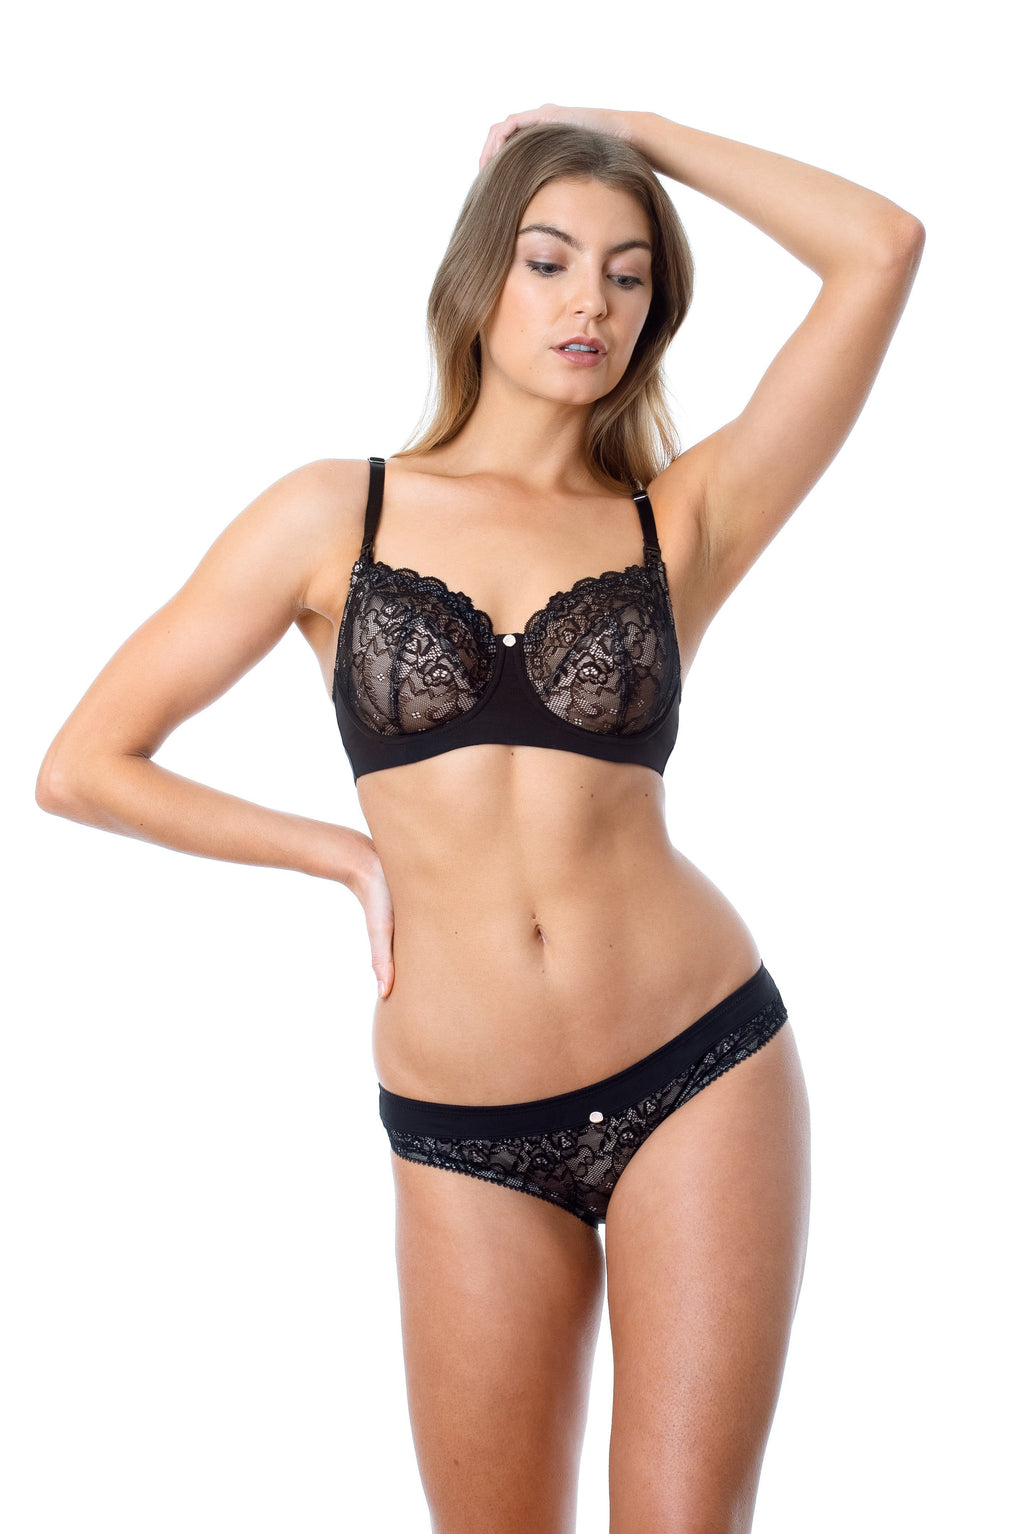 a4cdb825840c5 TEMPTATION BLACK HOTMILK NURSING AND BREASTFEEDING BRA